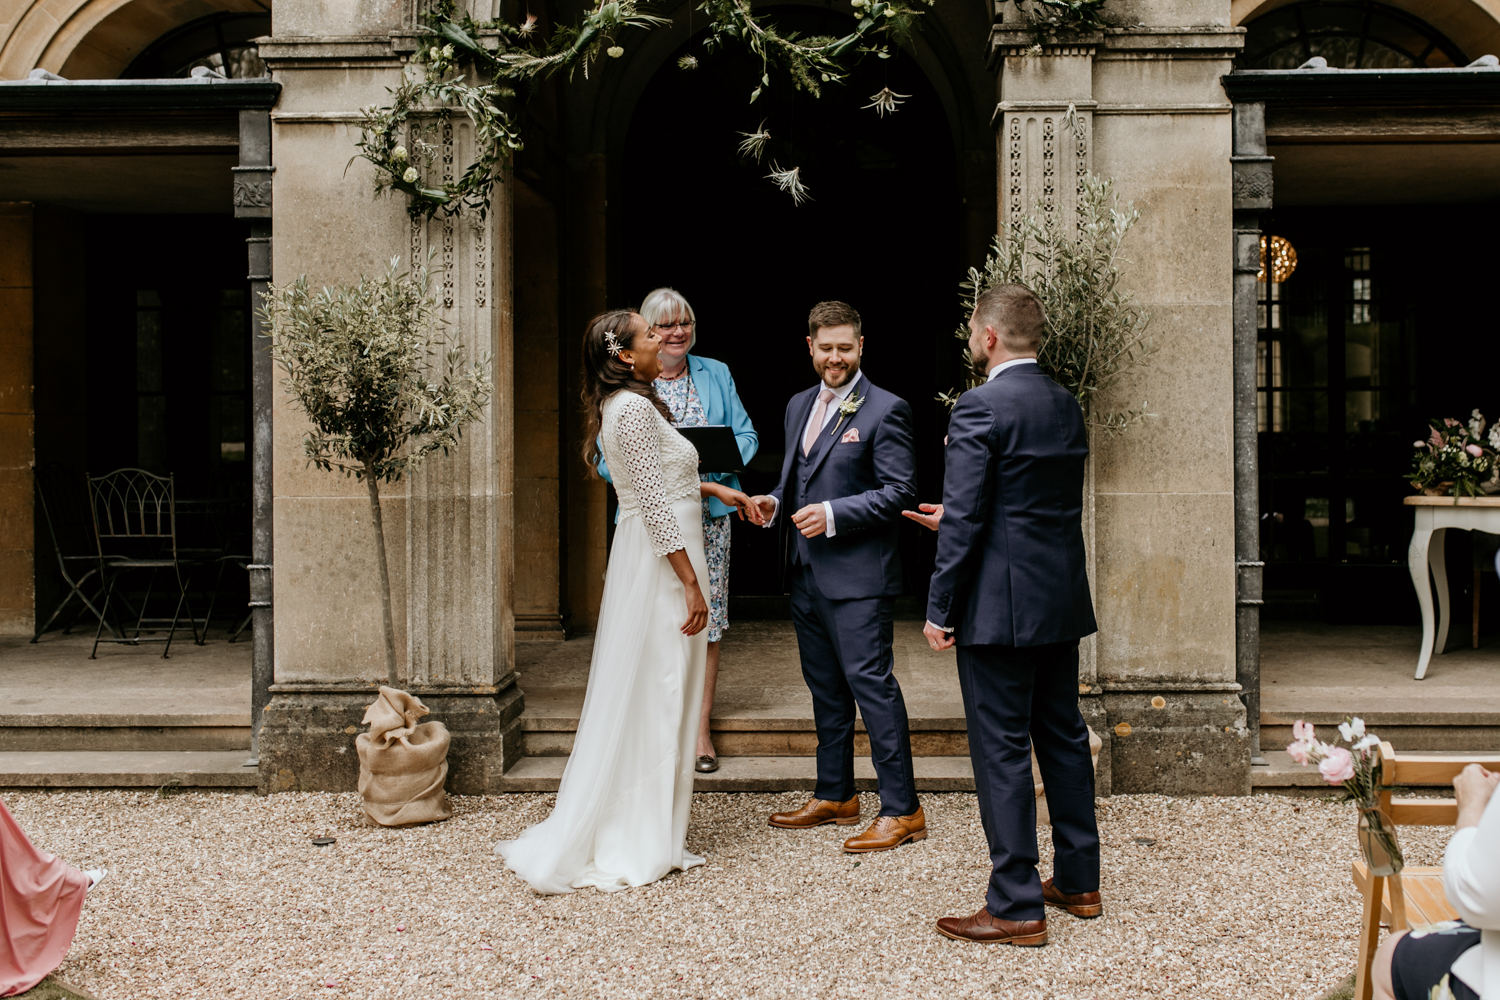 ring exchange for an outdoor wedding ceremony at Coombe Lodge Blagdon wedding venue